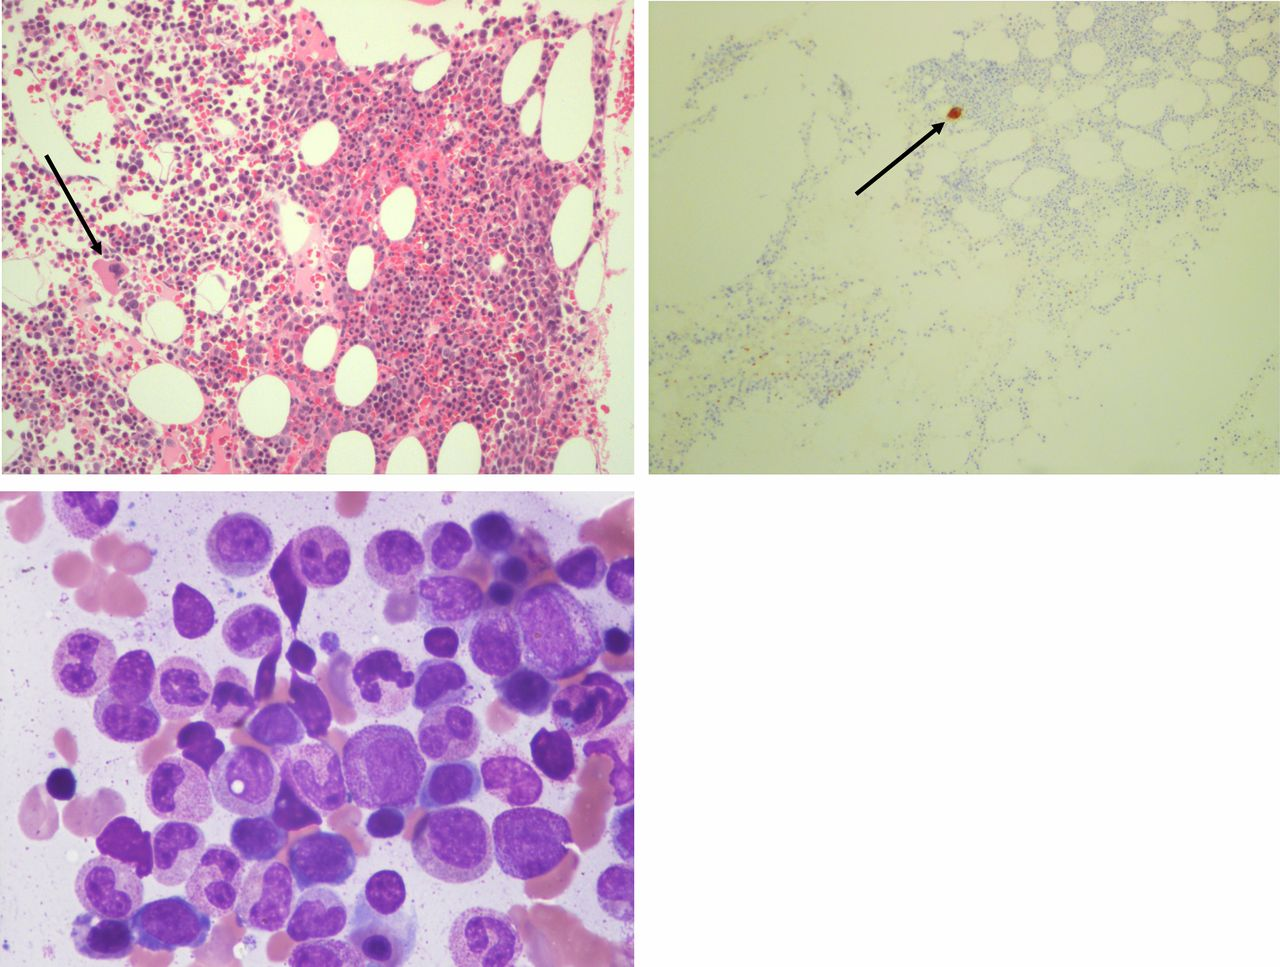 Acquired amegakaryocytic thrombocytopenia as a rare cause of